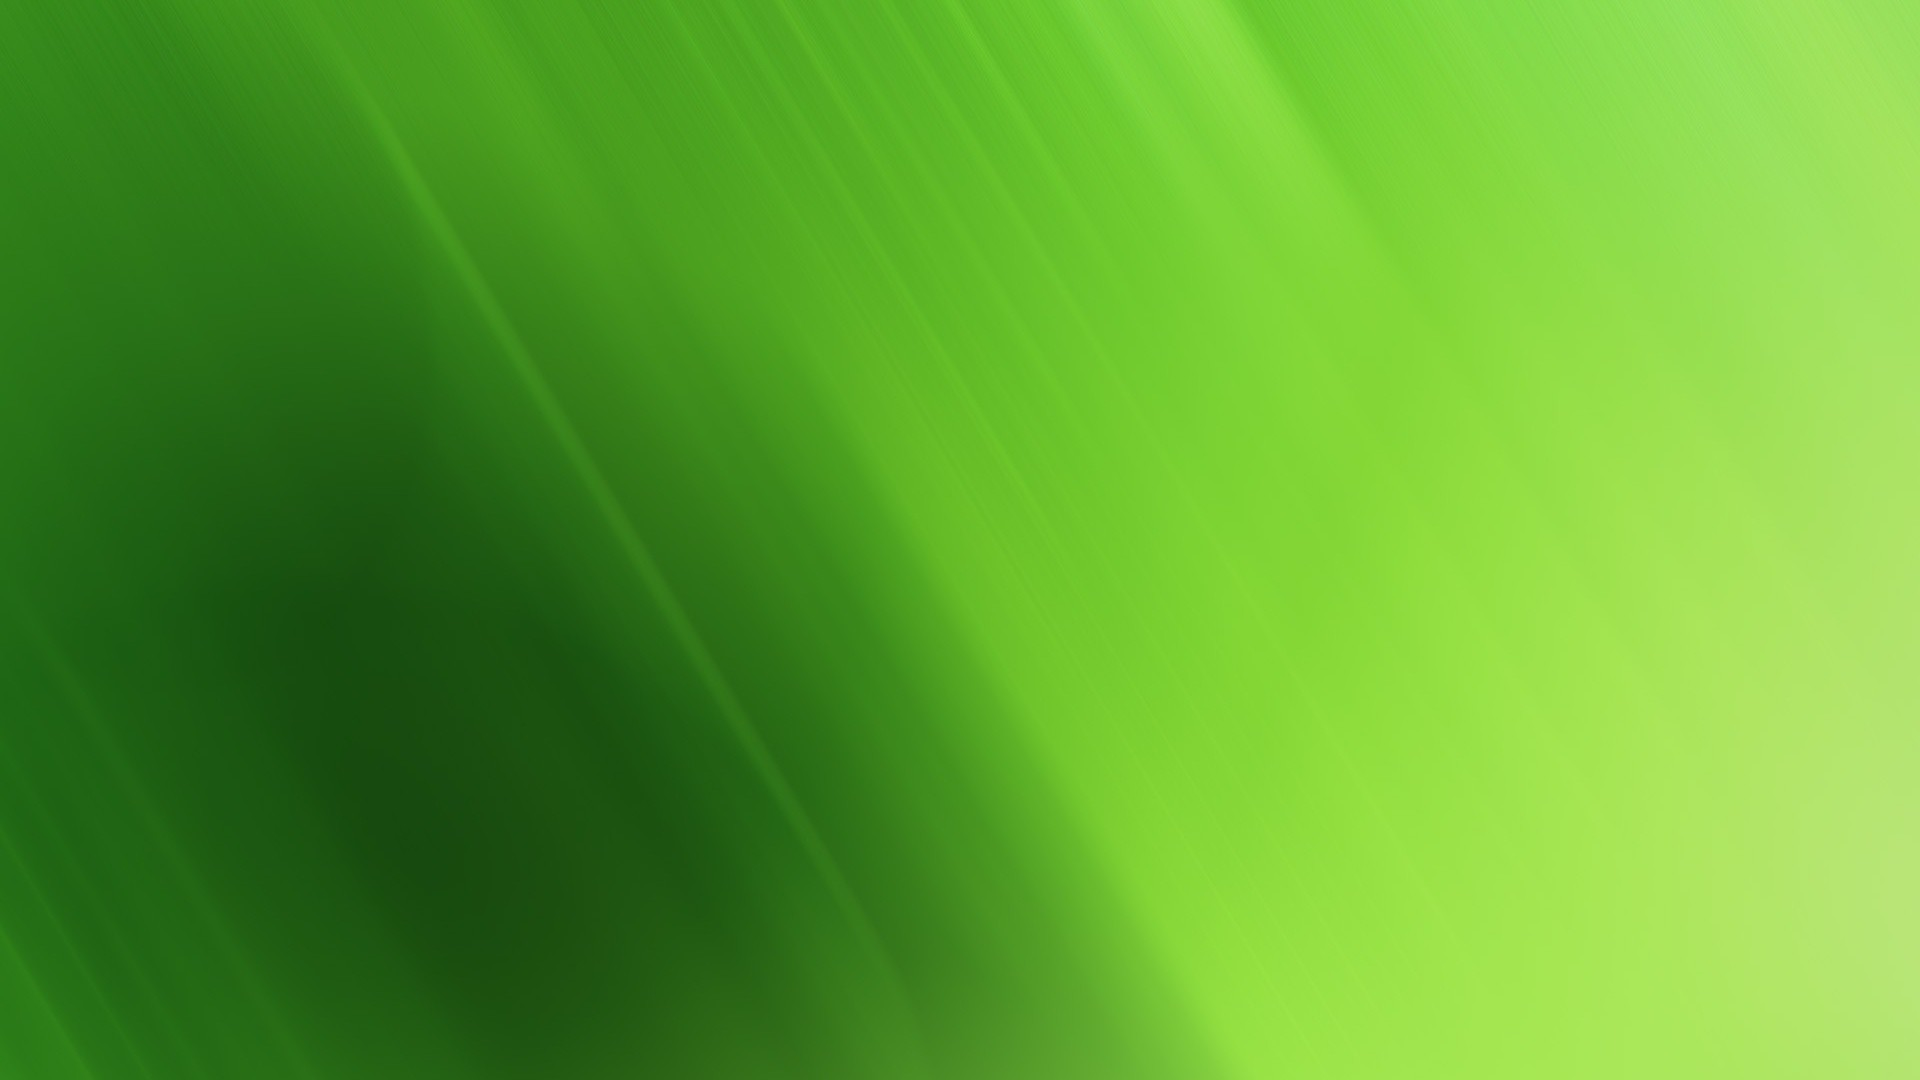 Green Wallpaper Hd 70 Pictures